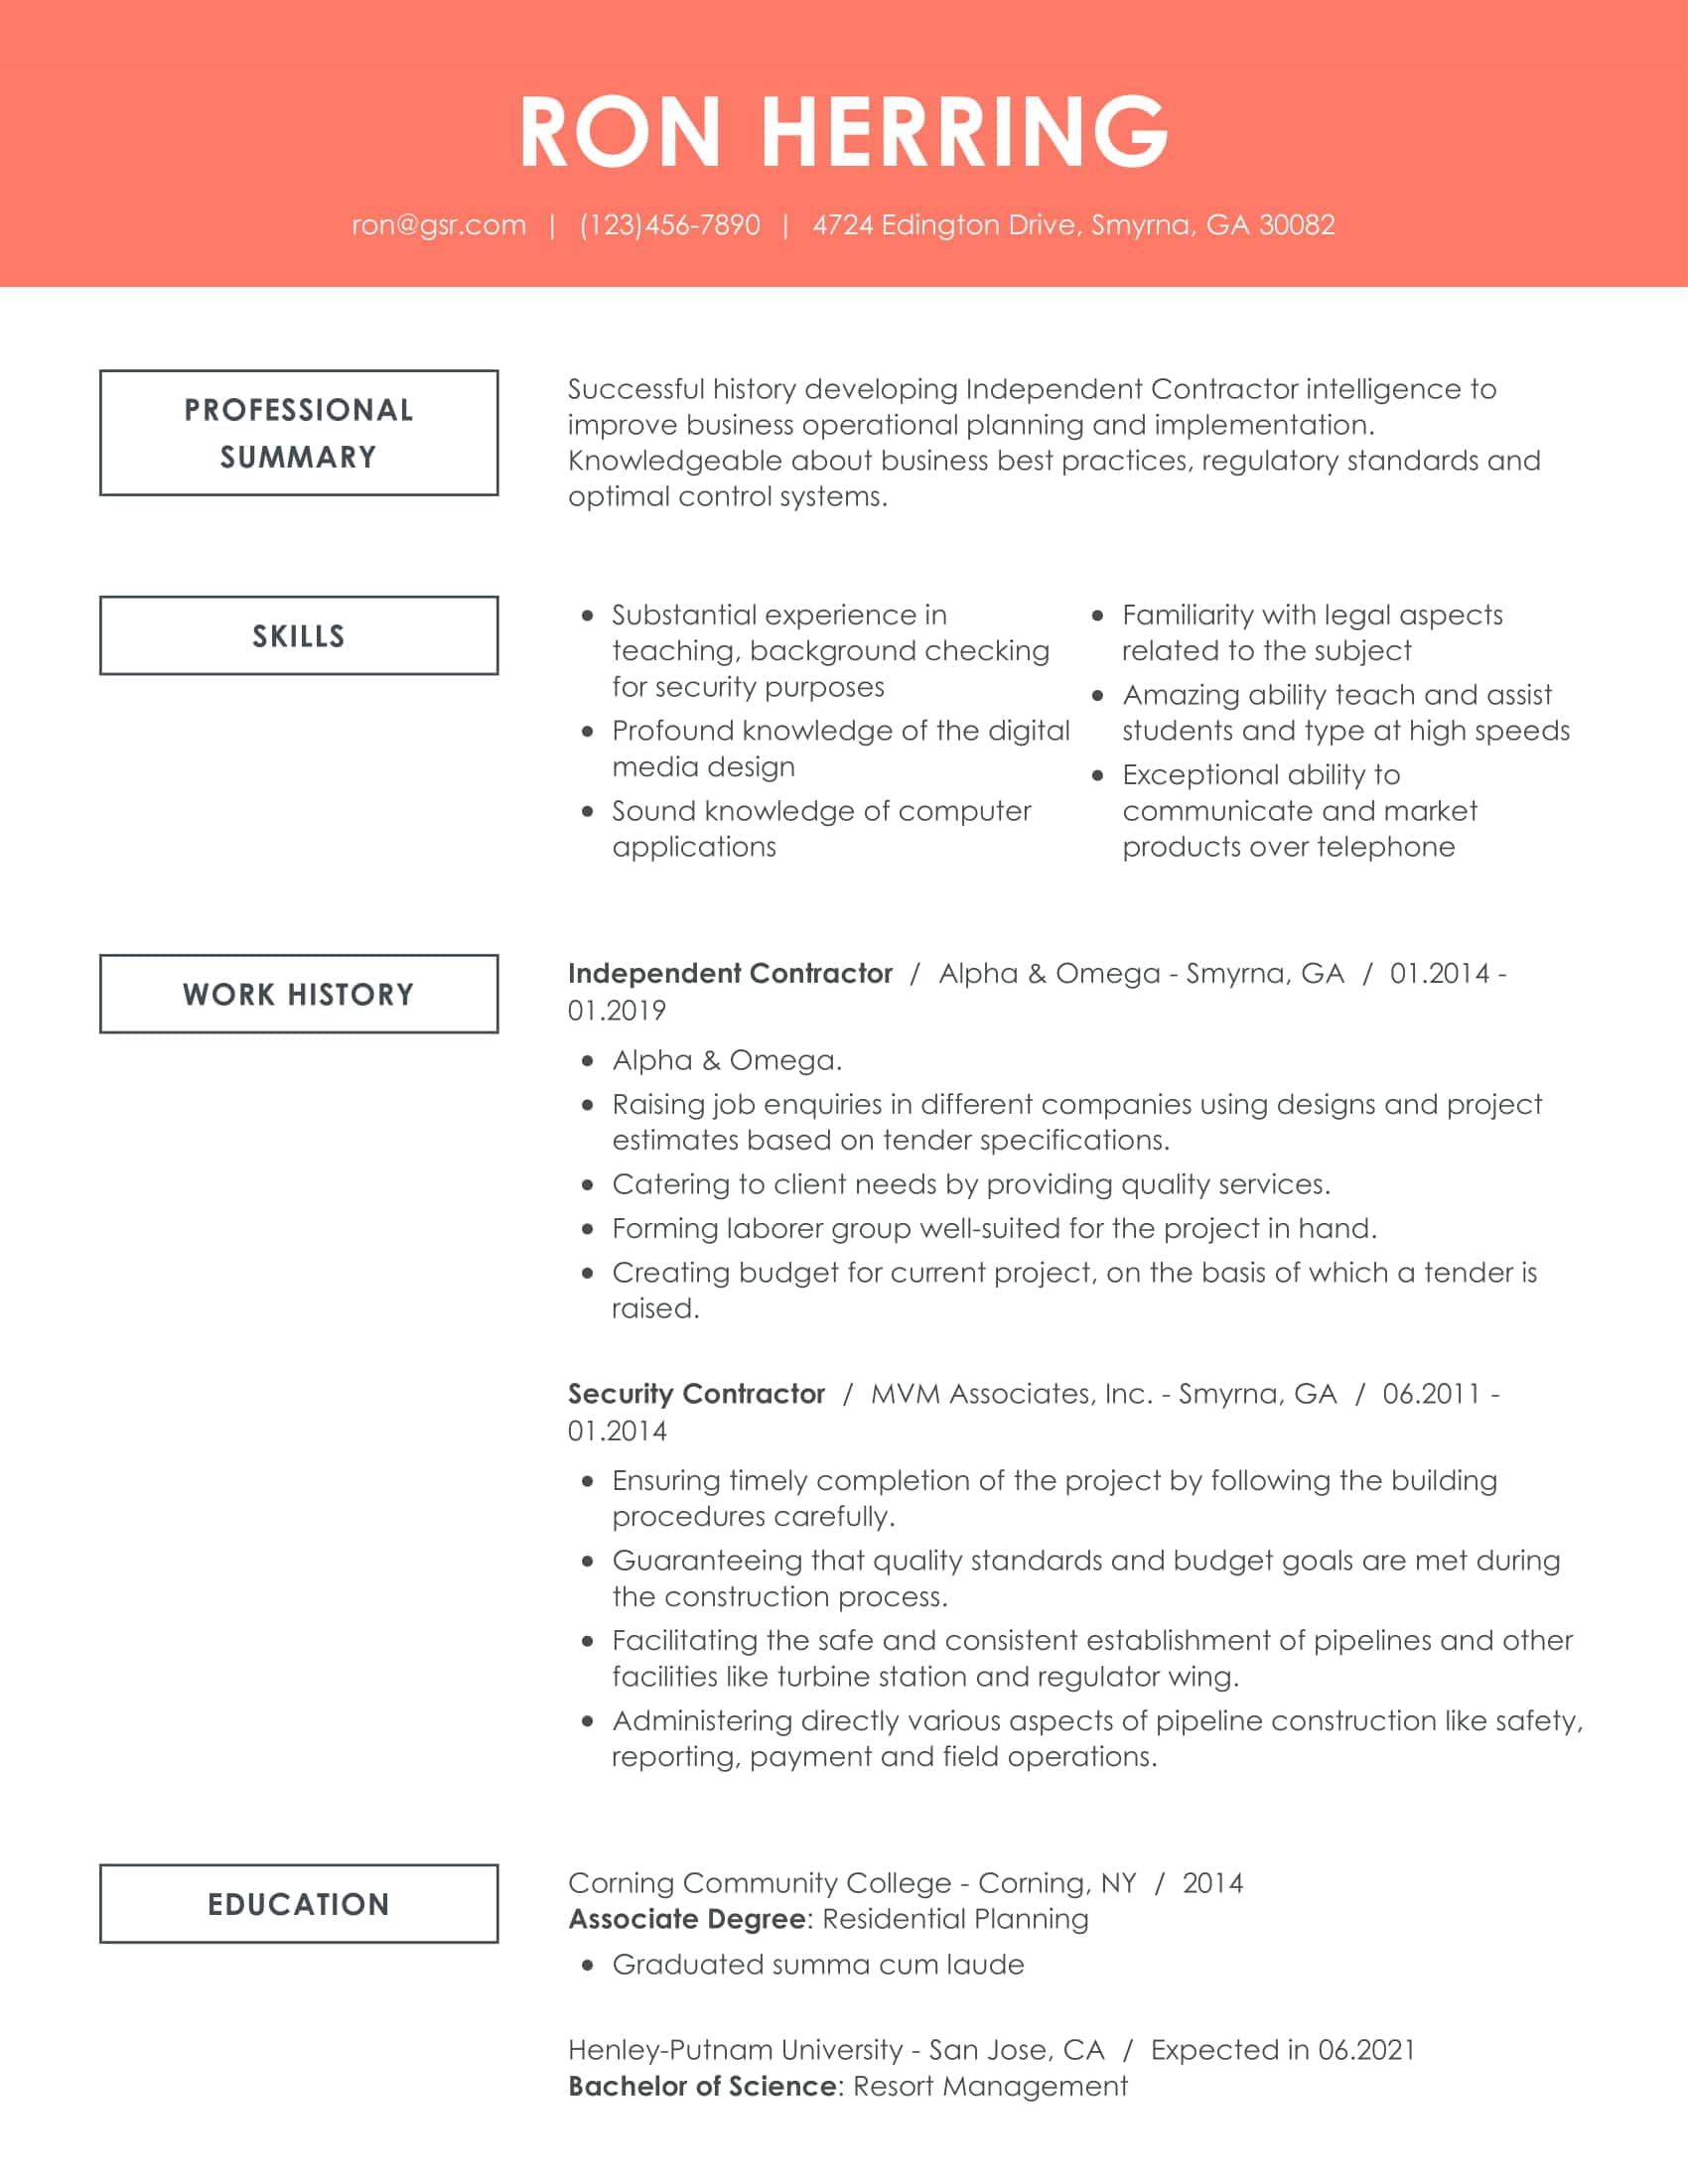 Creative Remarkable Peach Resume Template